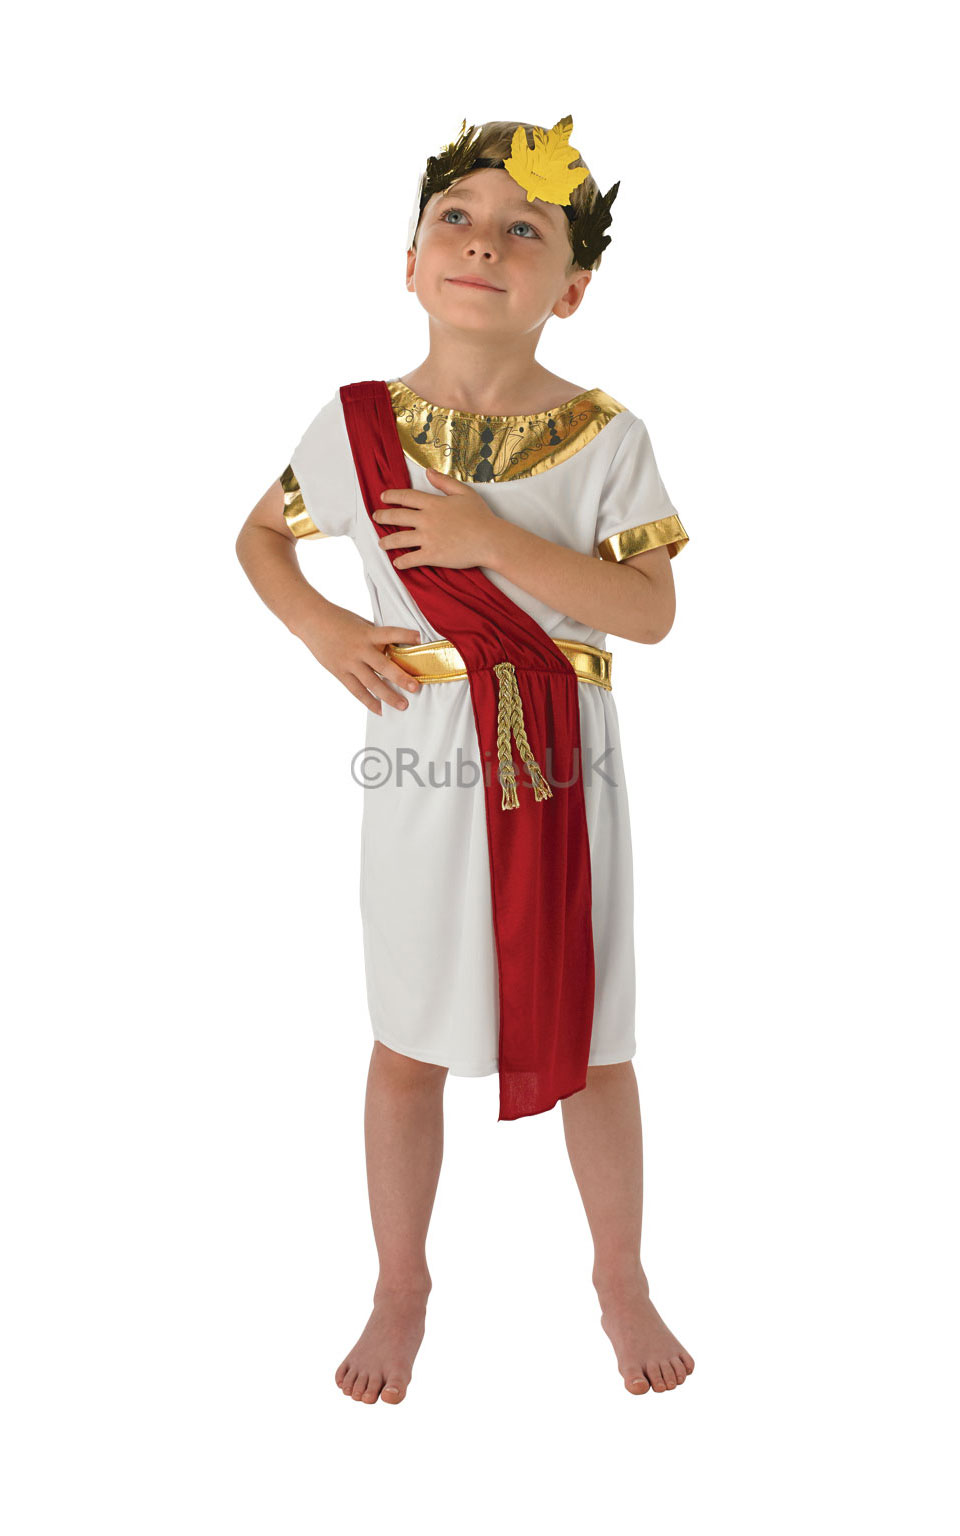 Child Gladiator Costume Boys Greek Caesar Book Week Day Fancy Dress Outfit New